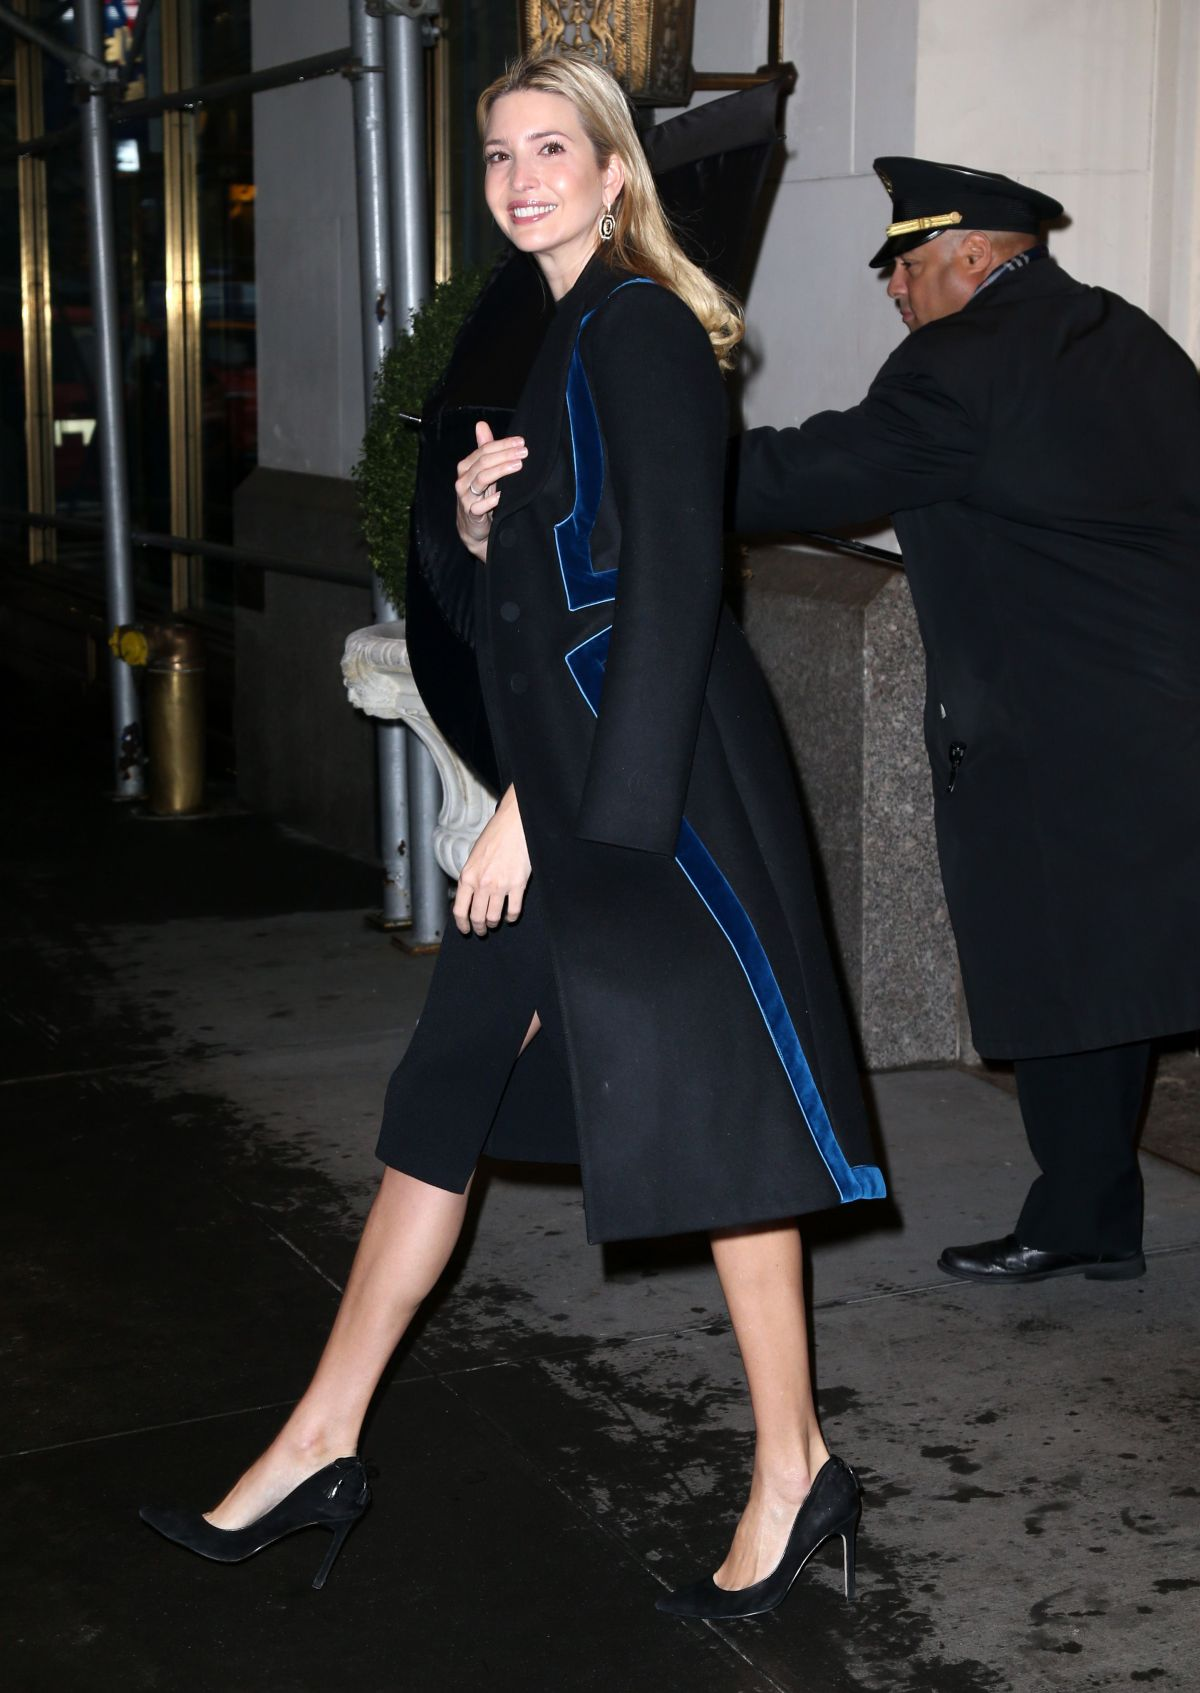 in HawtCelebs Out IVANKA York - New 12/12/2016 TRUMP